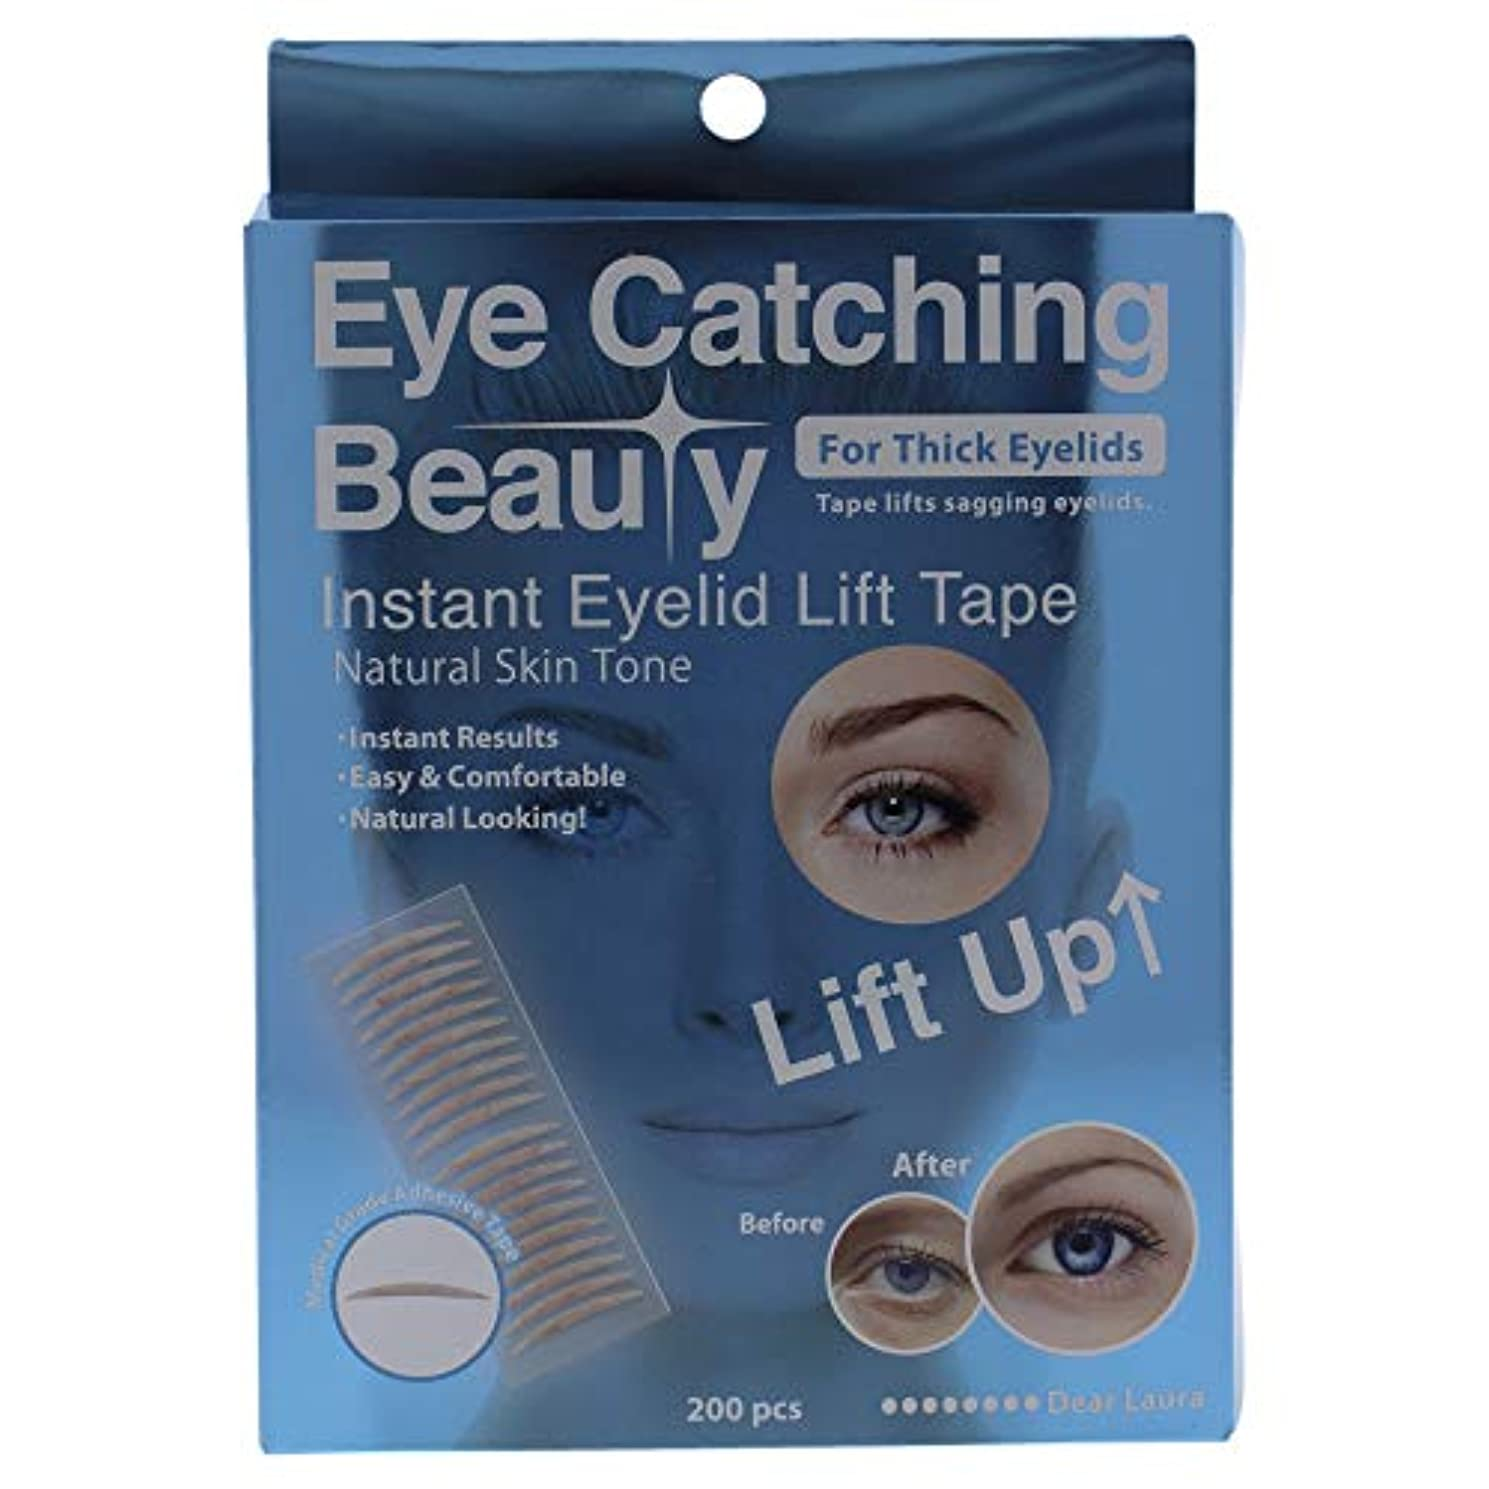 に同意するホステスありがたいEye Catching Beauty Instant Eyelid Lift Tape